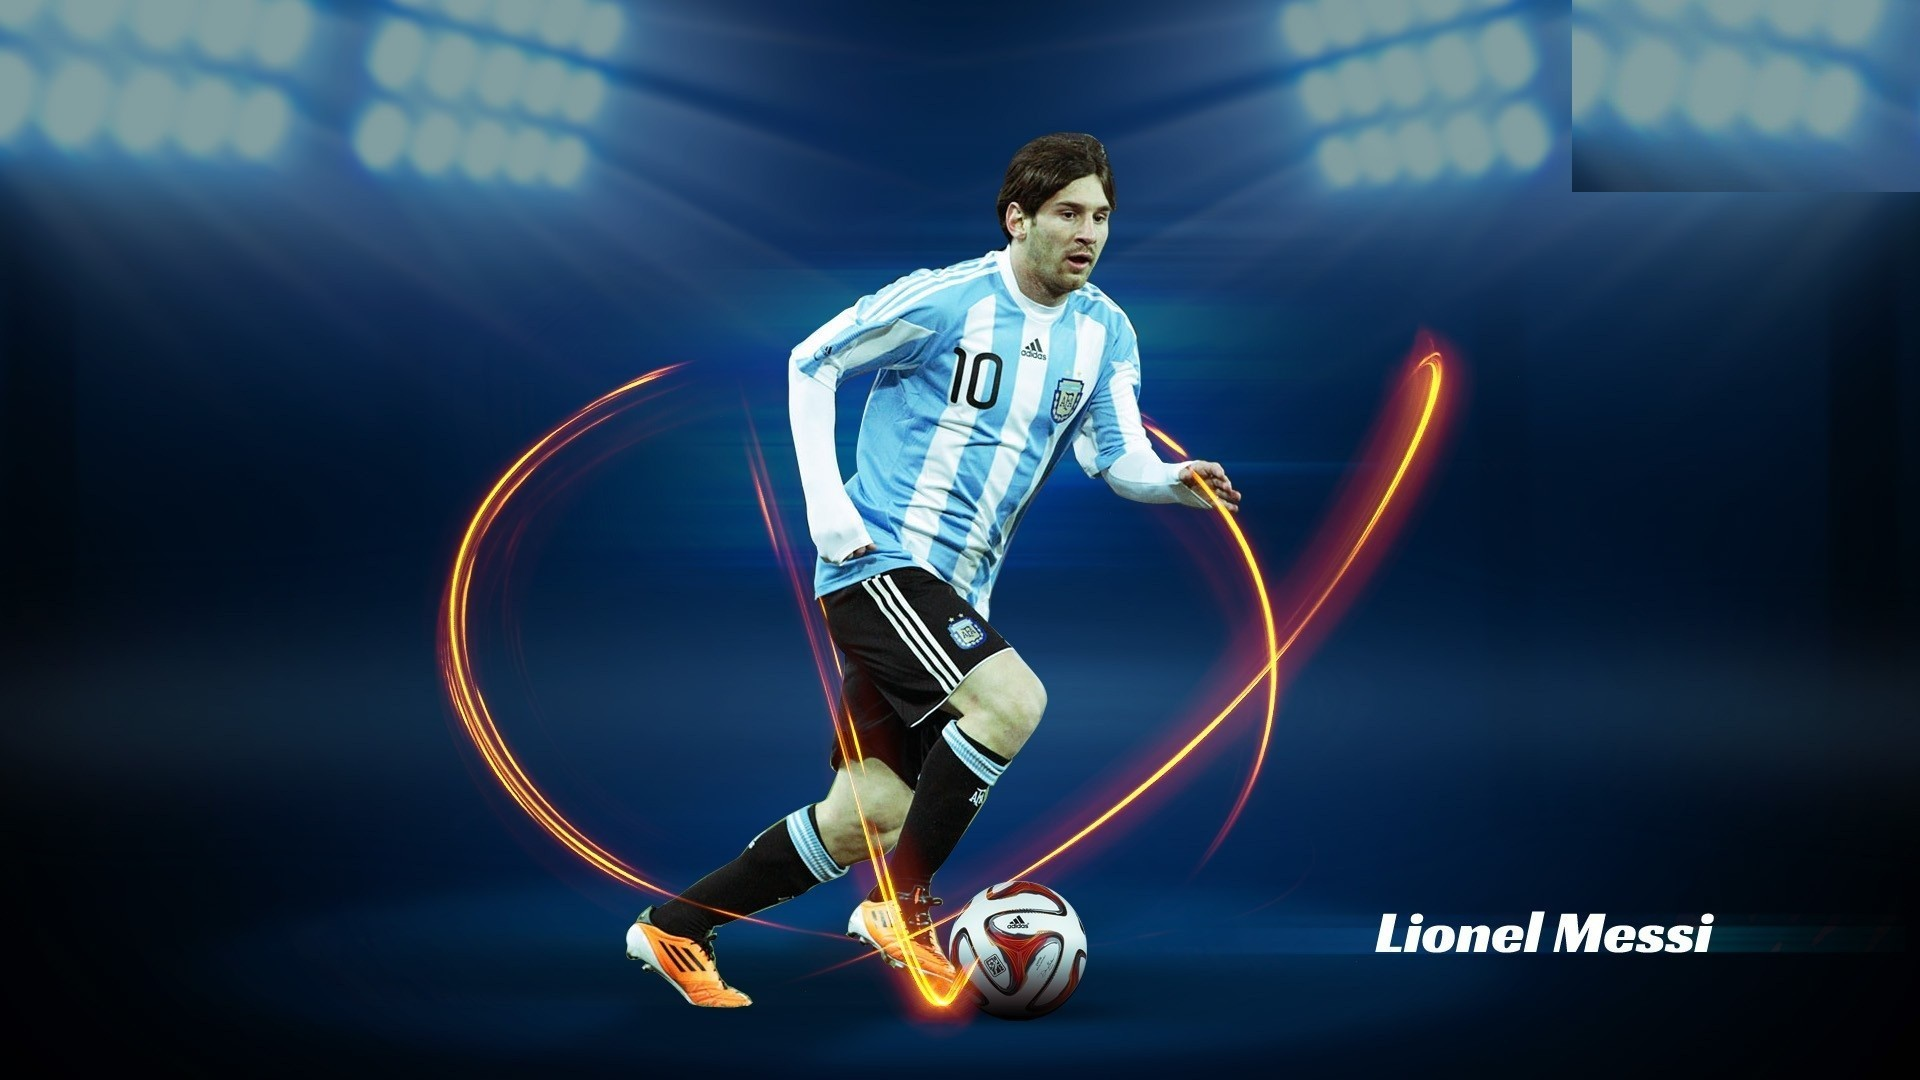 messi wallpaper iphone kolpaper